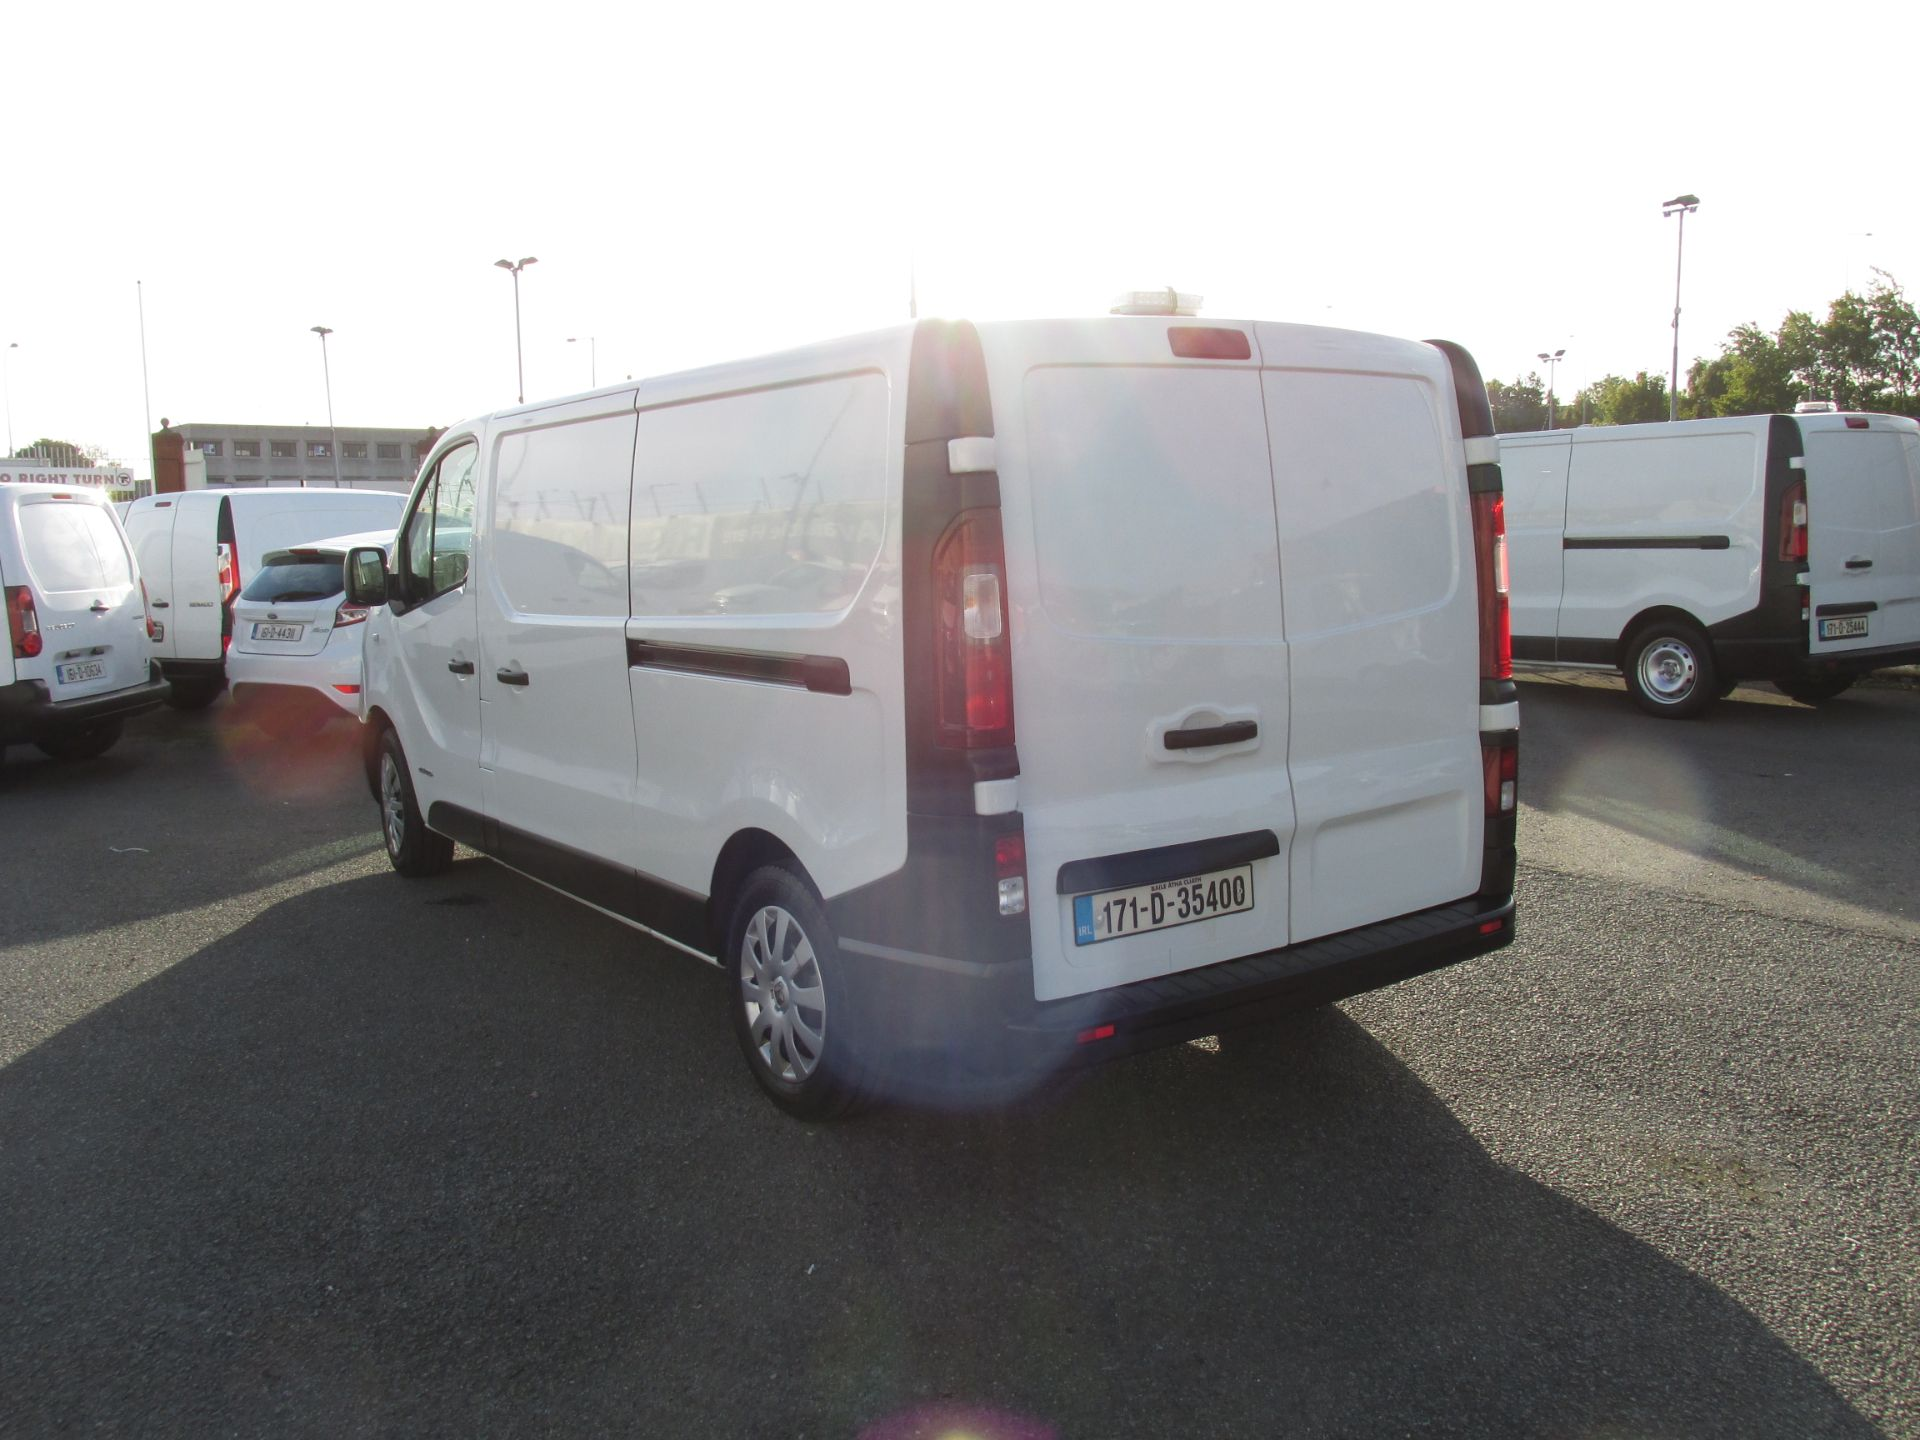 2017 Renault Trafic LL29 DCI 120 Business 3DR (171D35400) Image 5